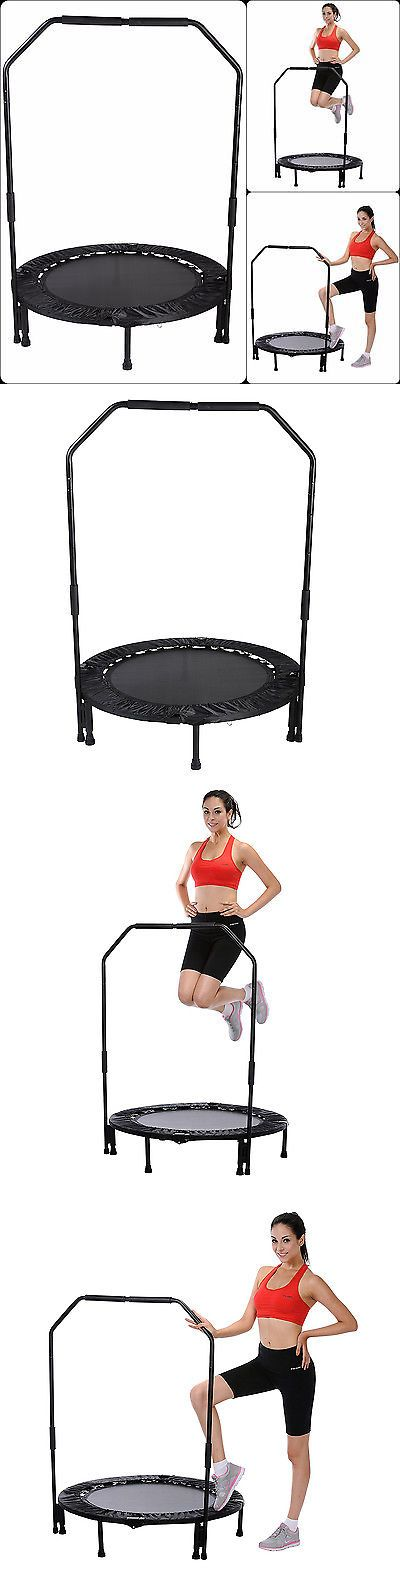 Balance Trainers 179803: Mini Foldable Trampoline With Bar Urban Rebounder Gym Bouncing Exercise Workout BUY IT NOW ONLY: $69.99